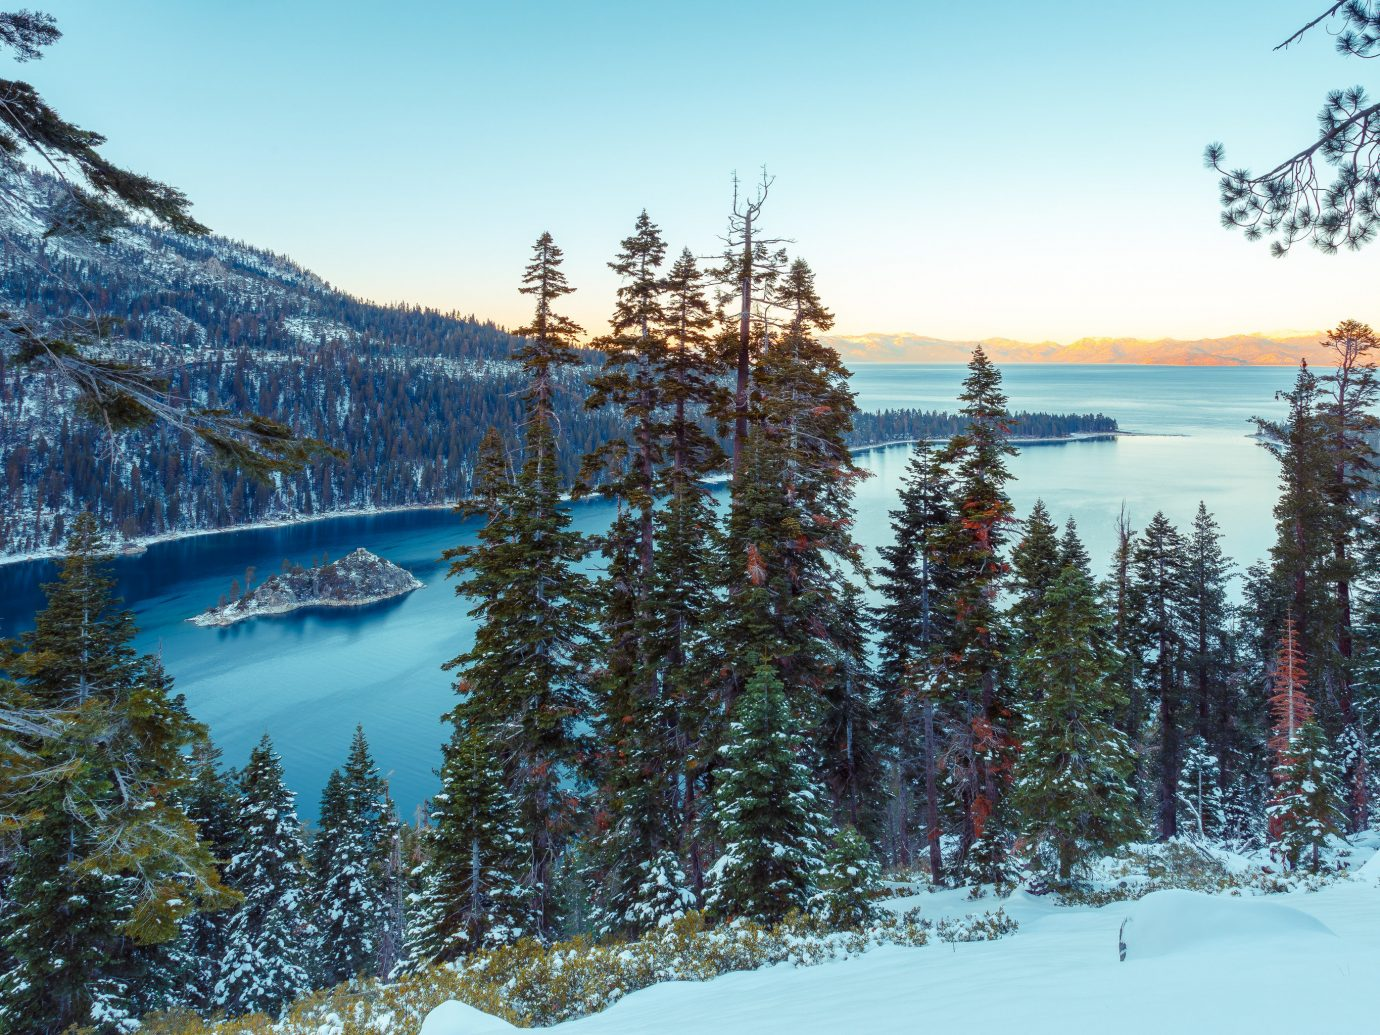 Hotels Mountains + Skiing Trip Ideas tree outdoor sky snow mountainous landforms Winter Lake wilderness Nature mountain season mountain range slope conifer Forest wooded hillside